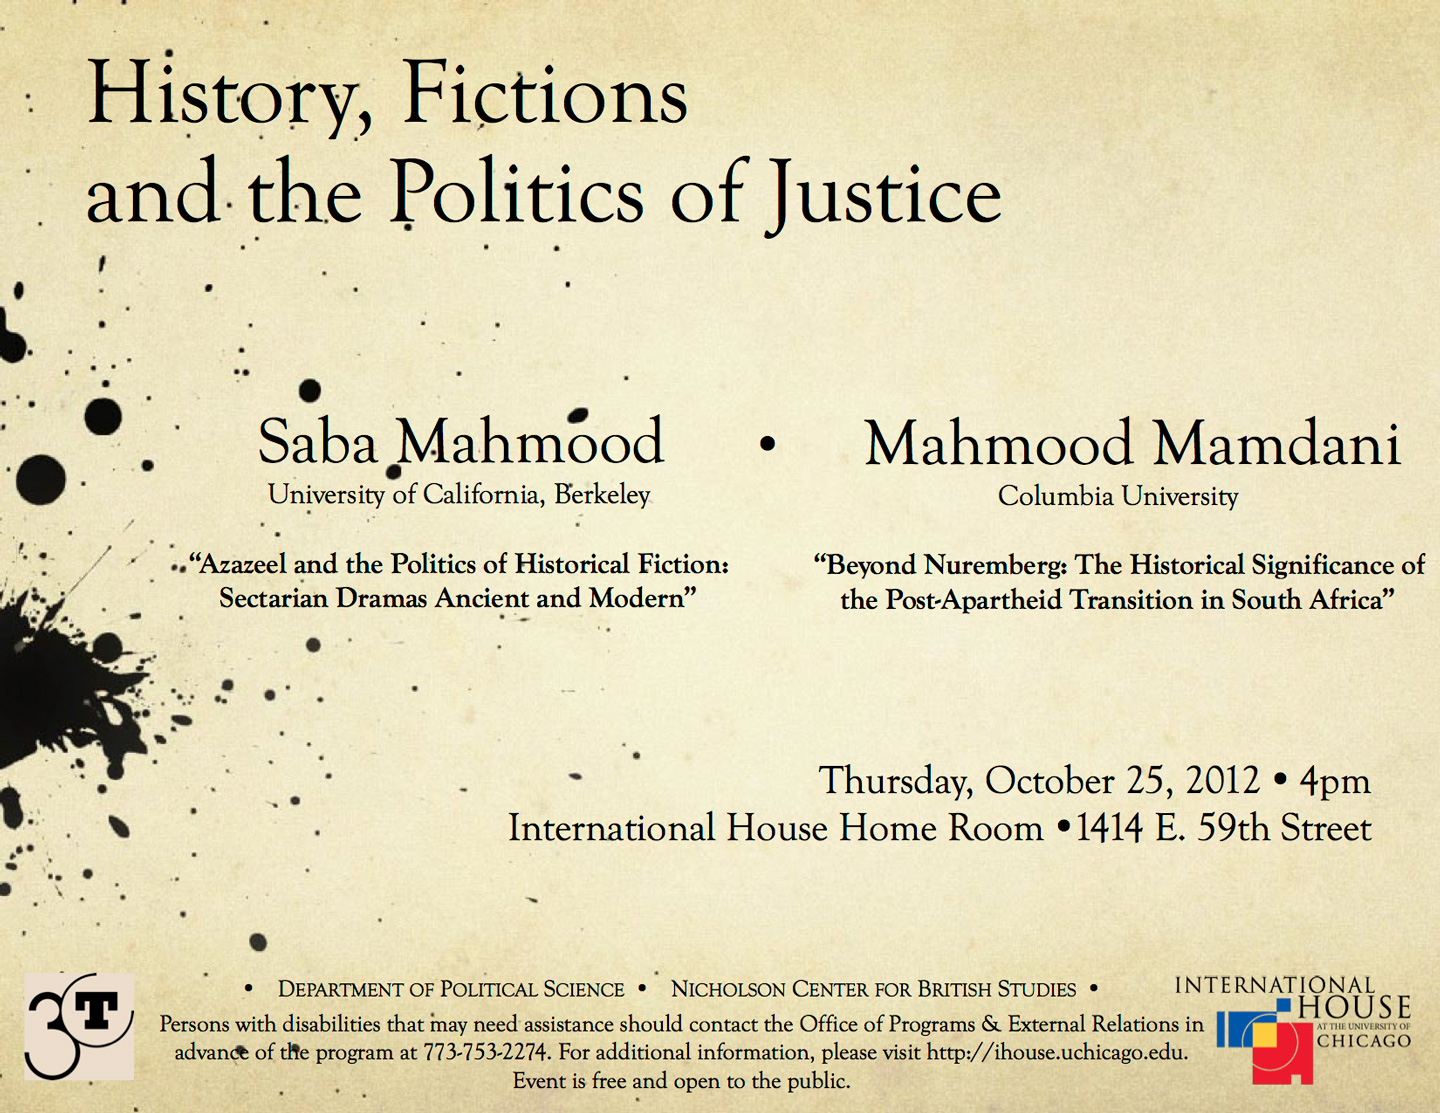 poster for Mahmood and Mamdani event: History, Fictions, and the Politics of Justice